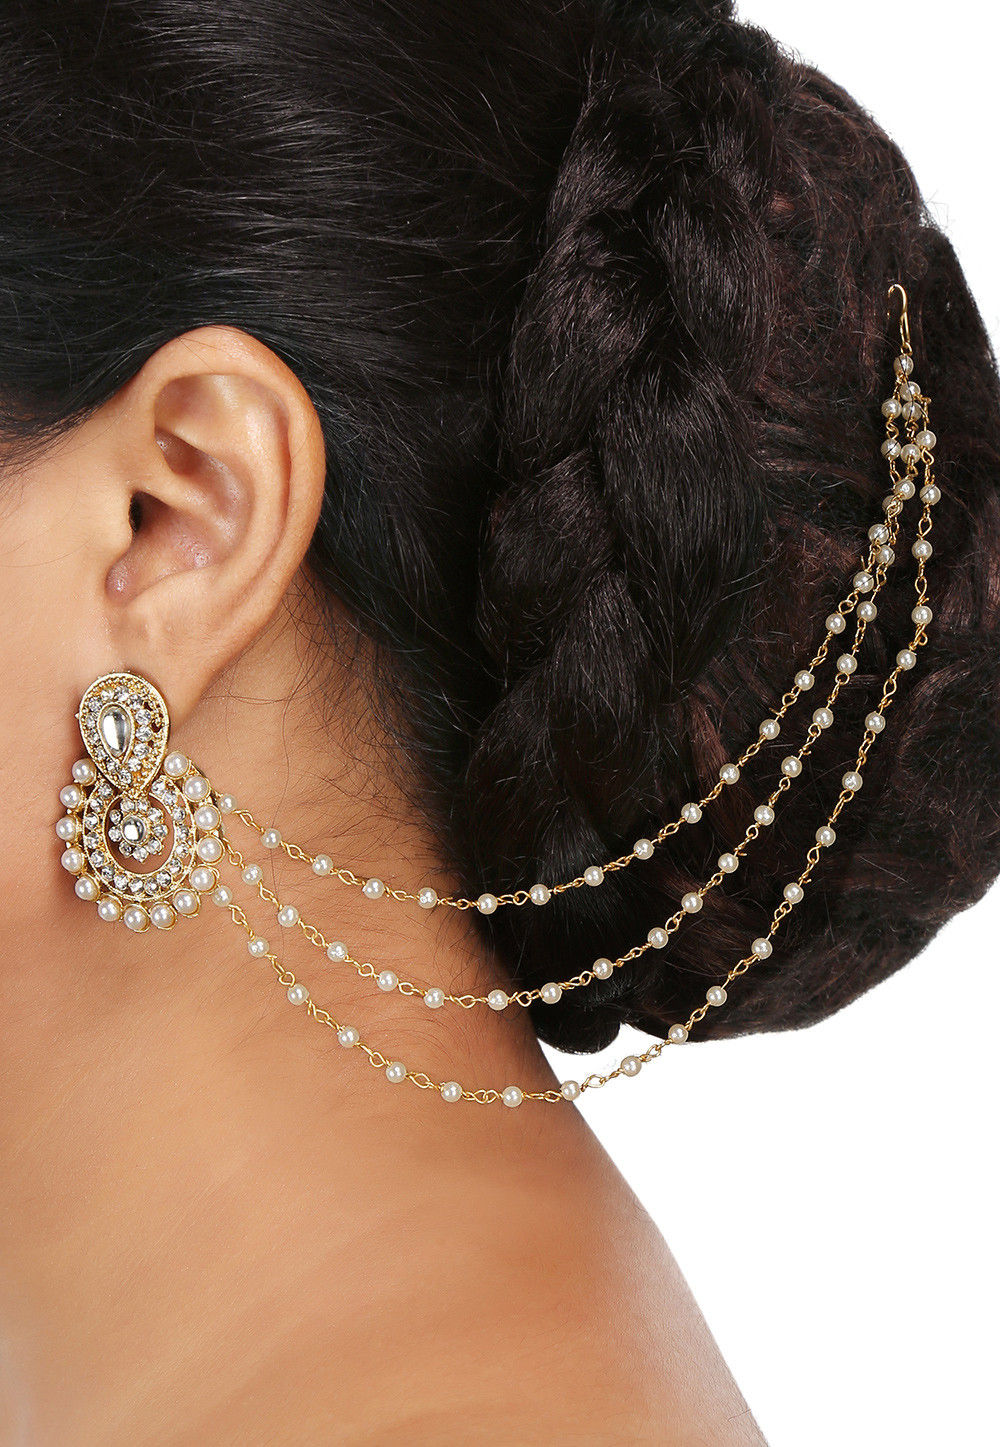 Beaded Ear Chain